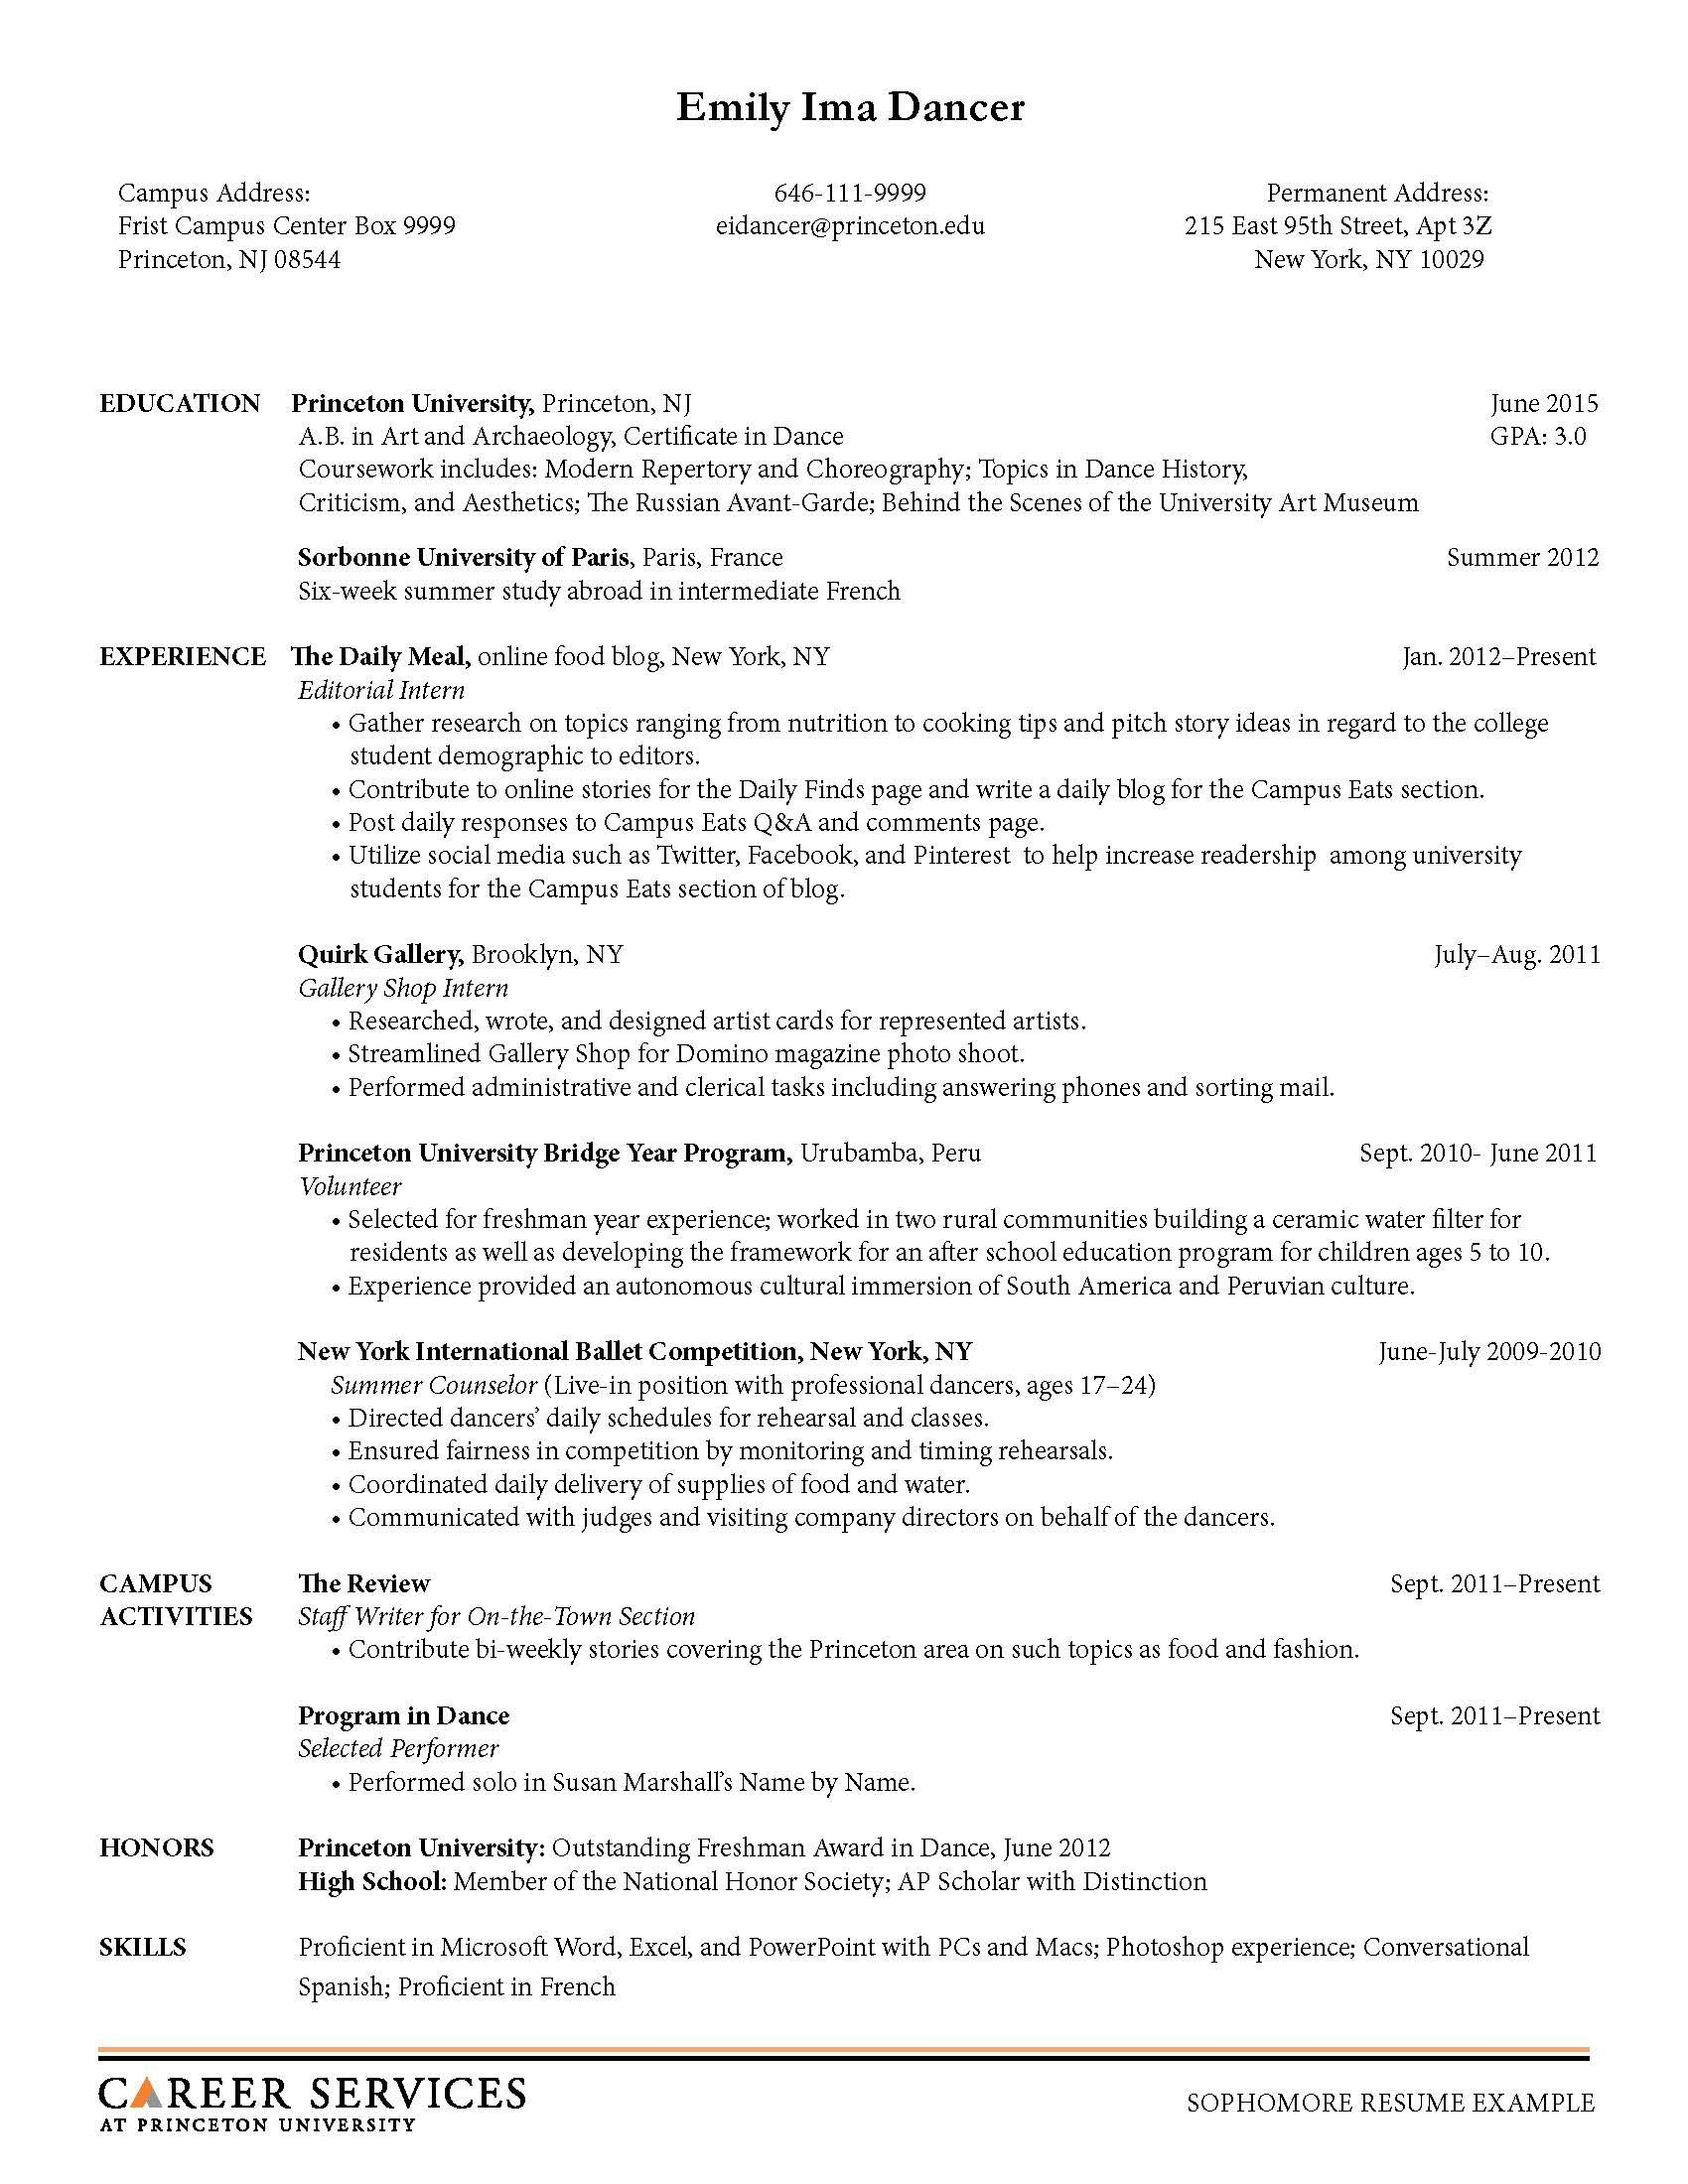 Opposenewapstandardsus  Nice Sample Resume Resume And Career On Pinterest With Magnificent Resume Maker For Mac Besides Cool Resume Templates Free Furthermore Case Worker Resume With Lovely Supervisor Resume Skills Also Sample Resume For Registered Nurse In Addition Radiology Resume And Resume Research As Well As Resume Strong Words Additionally Registered Nurse Resume Templates From Pinterestcom With Opposenewapstandardsus  Magnificent Sample Resume Resume And Career On Pinterest With Lovely Resume Maker For Mac Besides Cool Resume Templates Free Furthermore Case Worker Resume And Nice Supervisor Resume Skills Also Sample Resume For Registered Nurse In Addition Radiology Resume From Pinterestcom